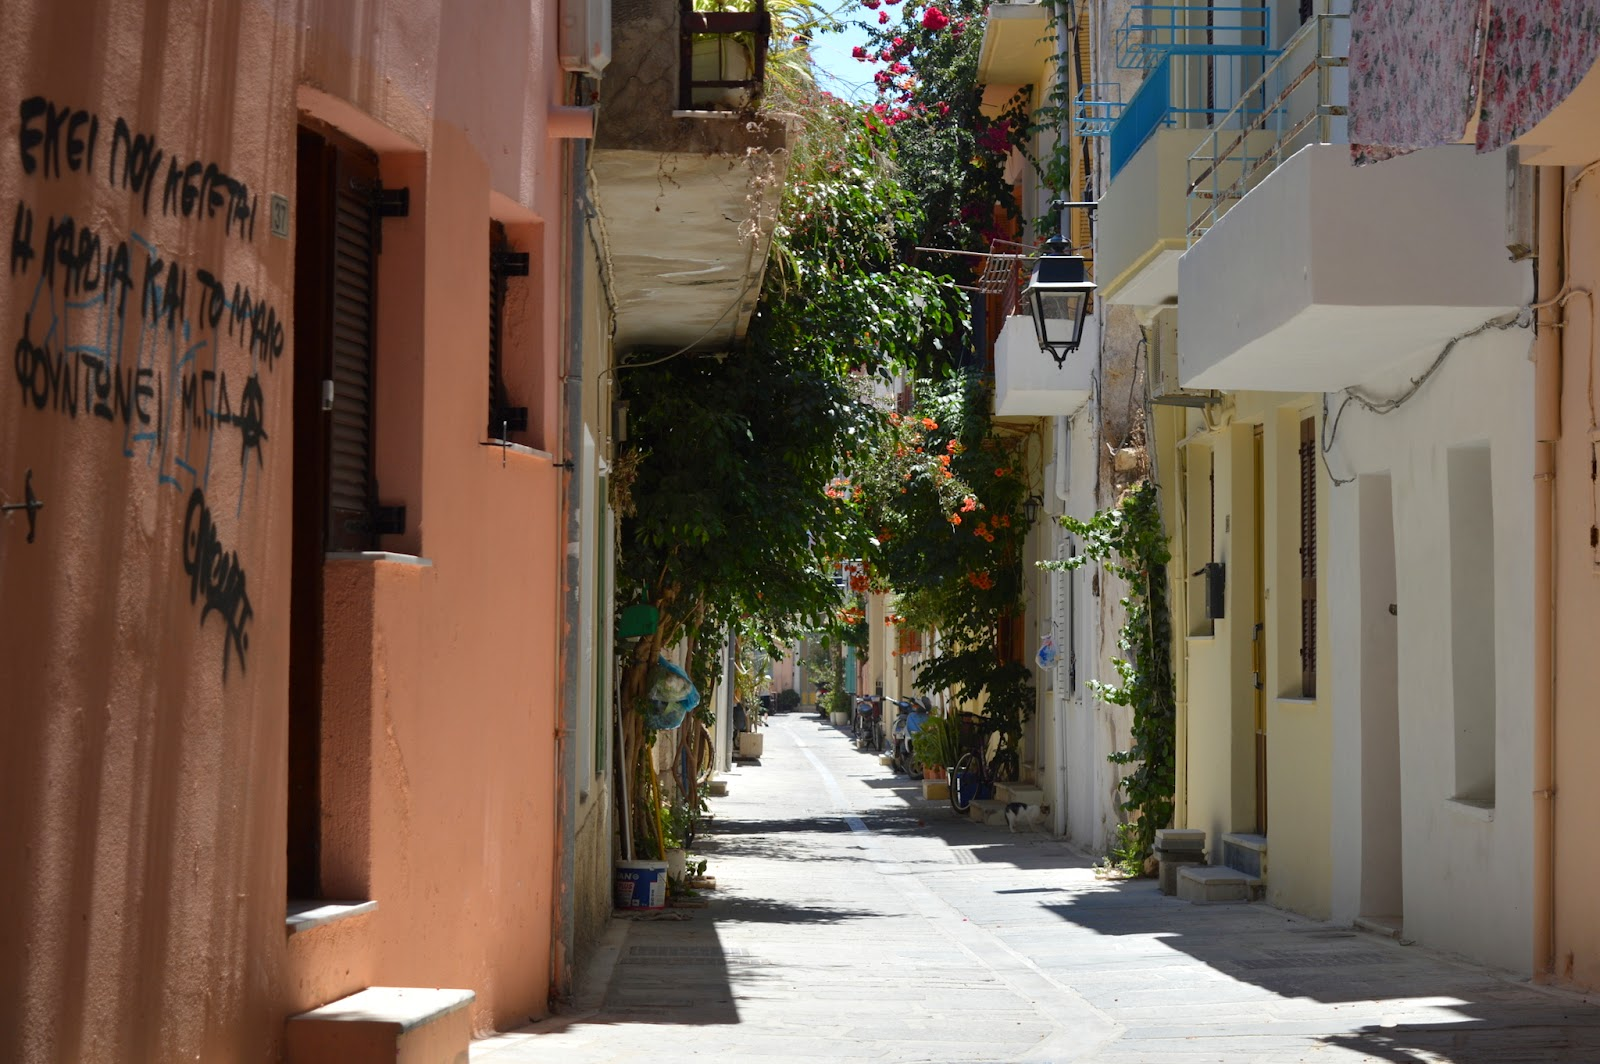 One of the many small streets in Rethimno from the beautiful island of Crete in Greece.